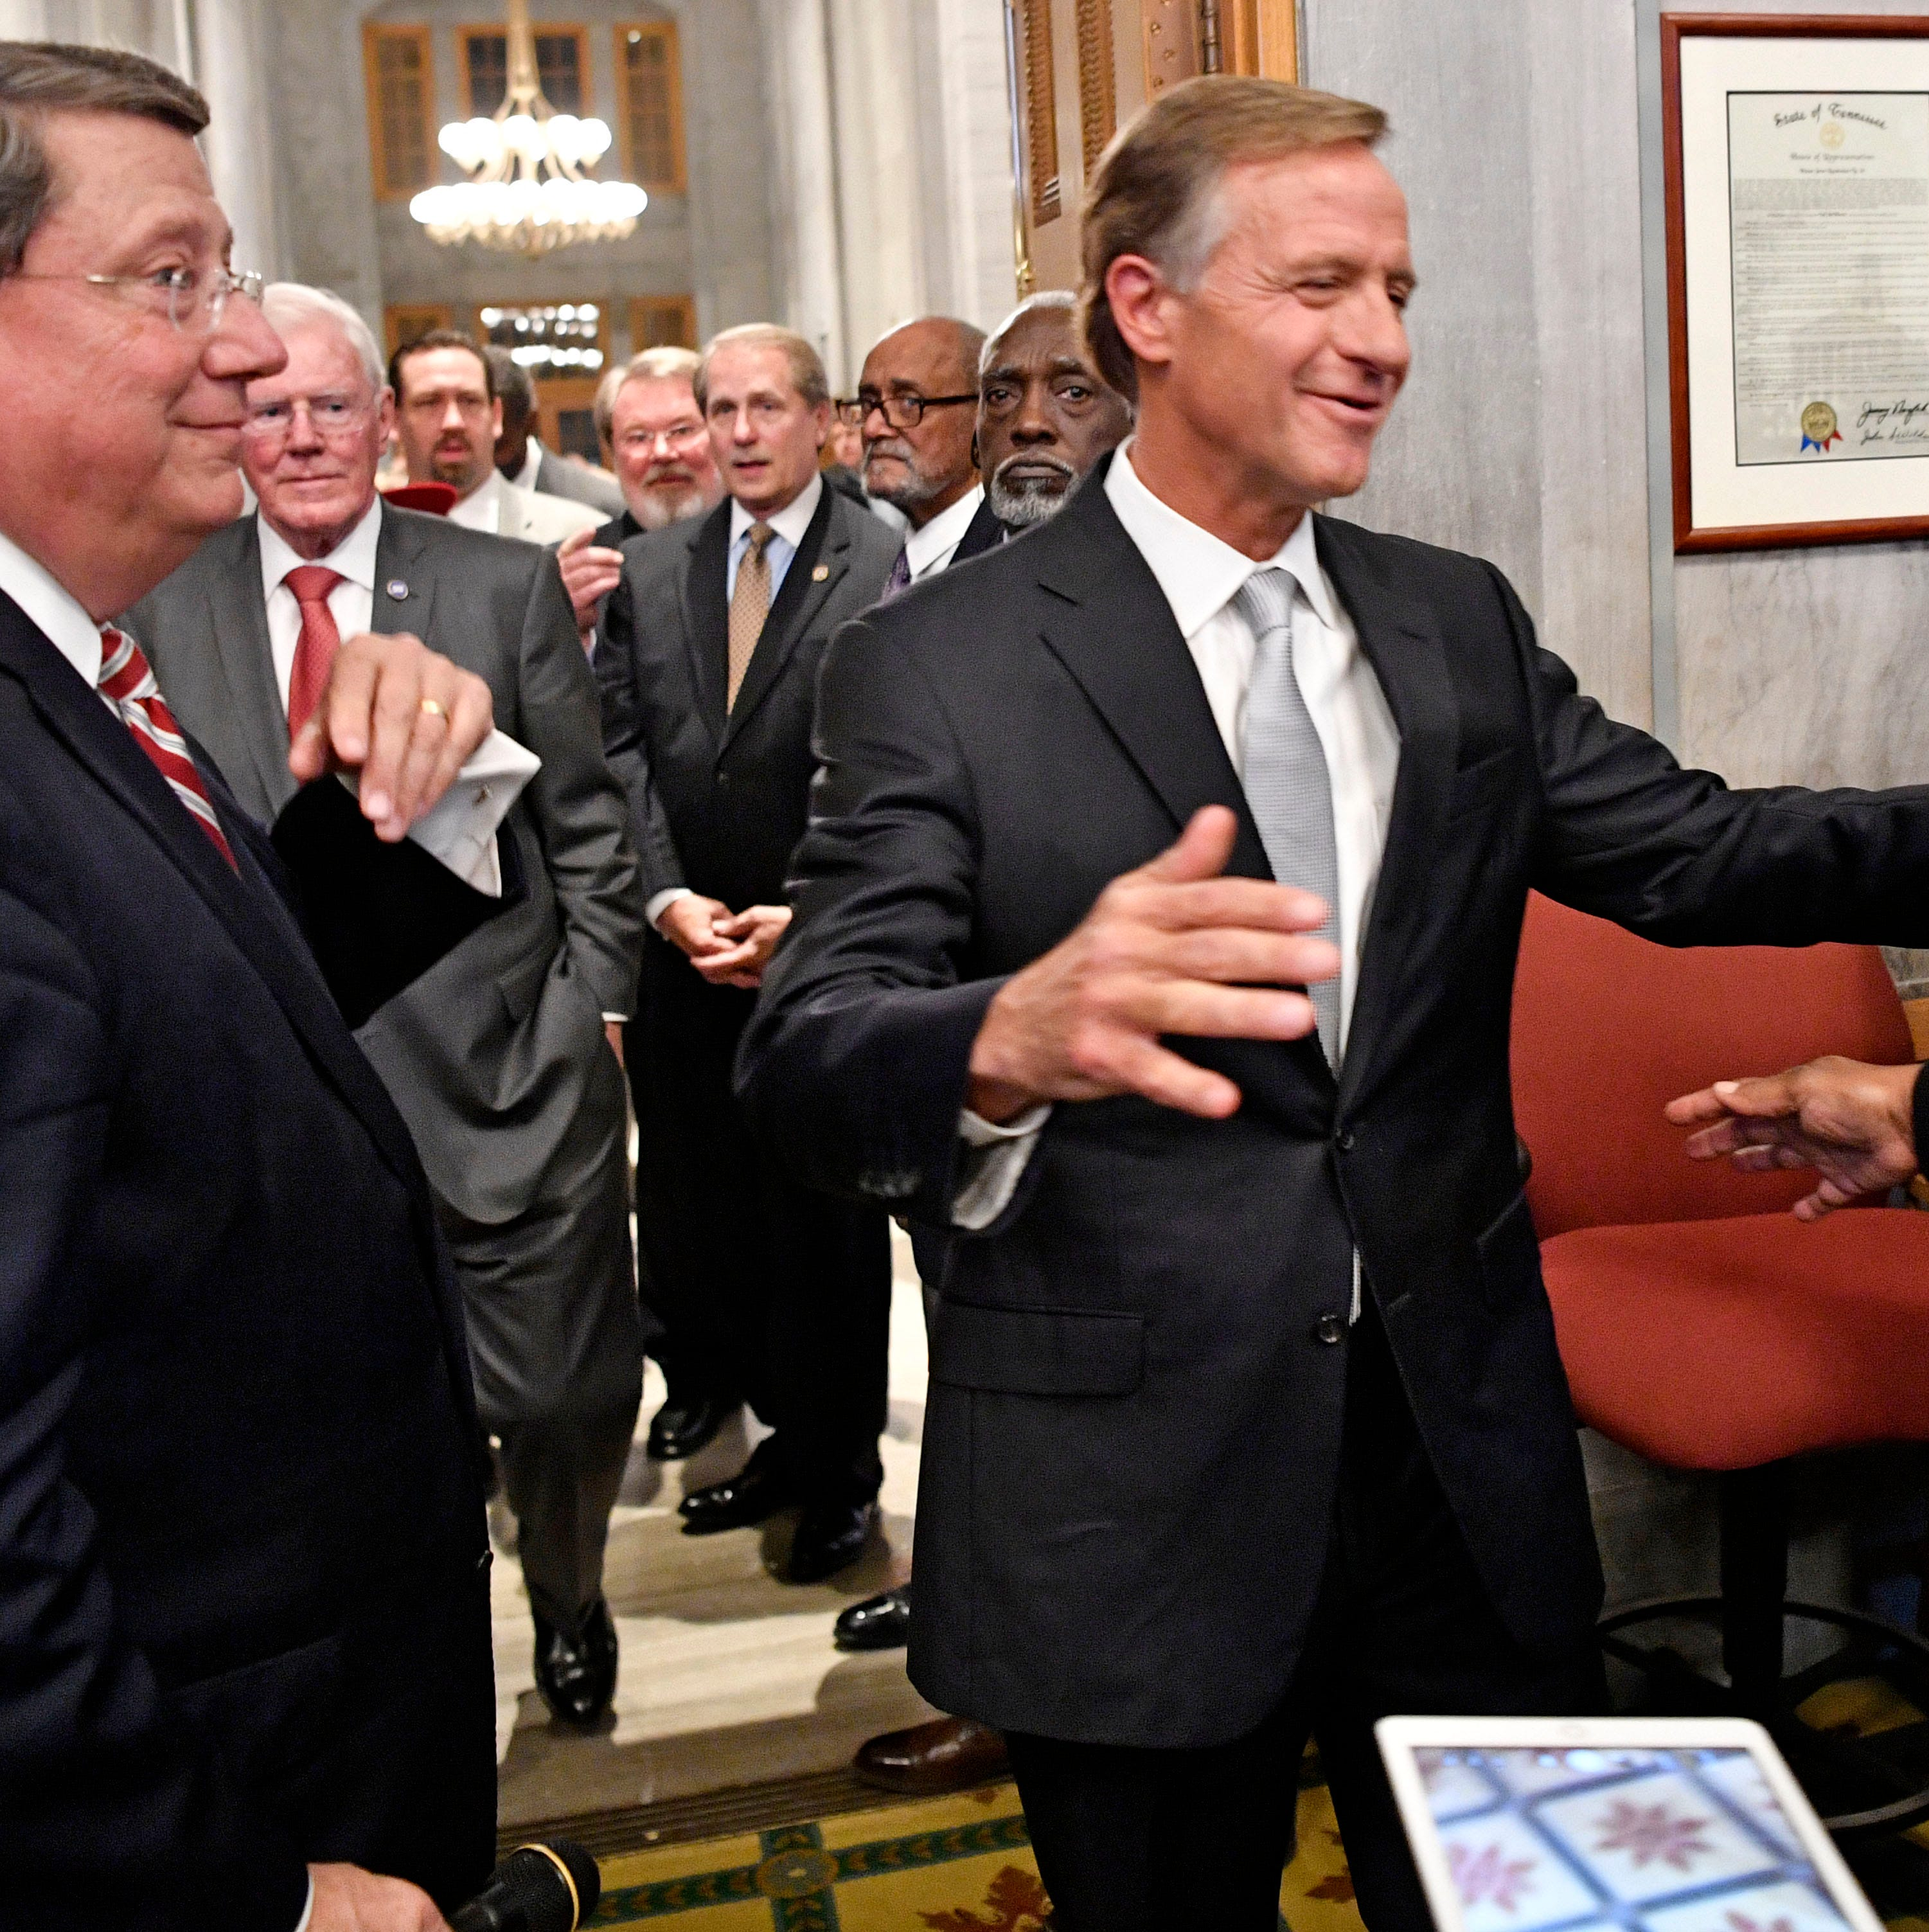 Governor Haslam grants executive clemency to 23 people. Here's who they are: